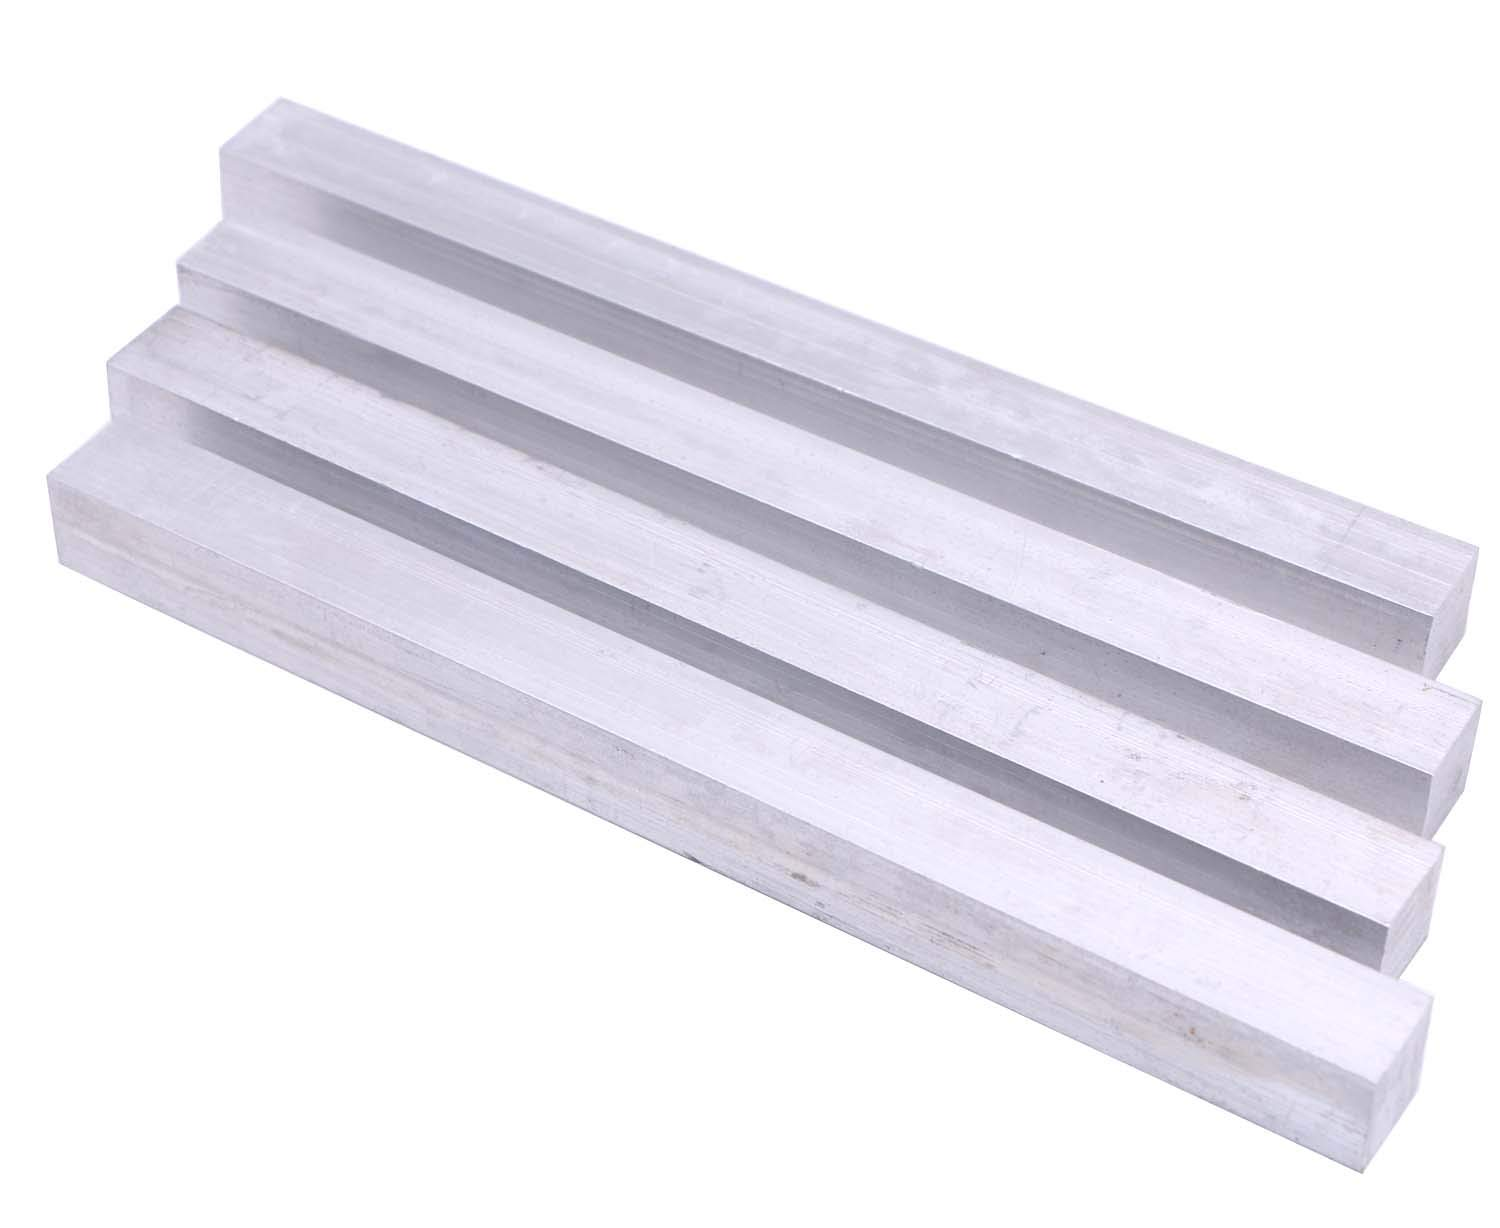 4 Pieces of 0.98 X 0.98 Square Aluminum BAR 12 Long .05//0 6061 General Purpose Plate,T6511 Solid New Mill Stock